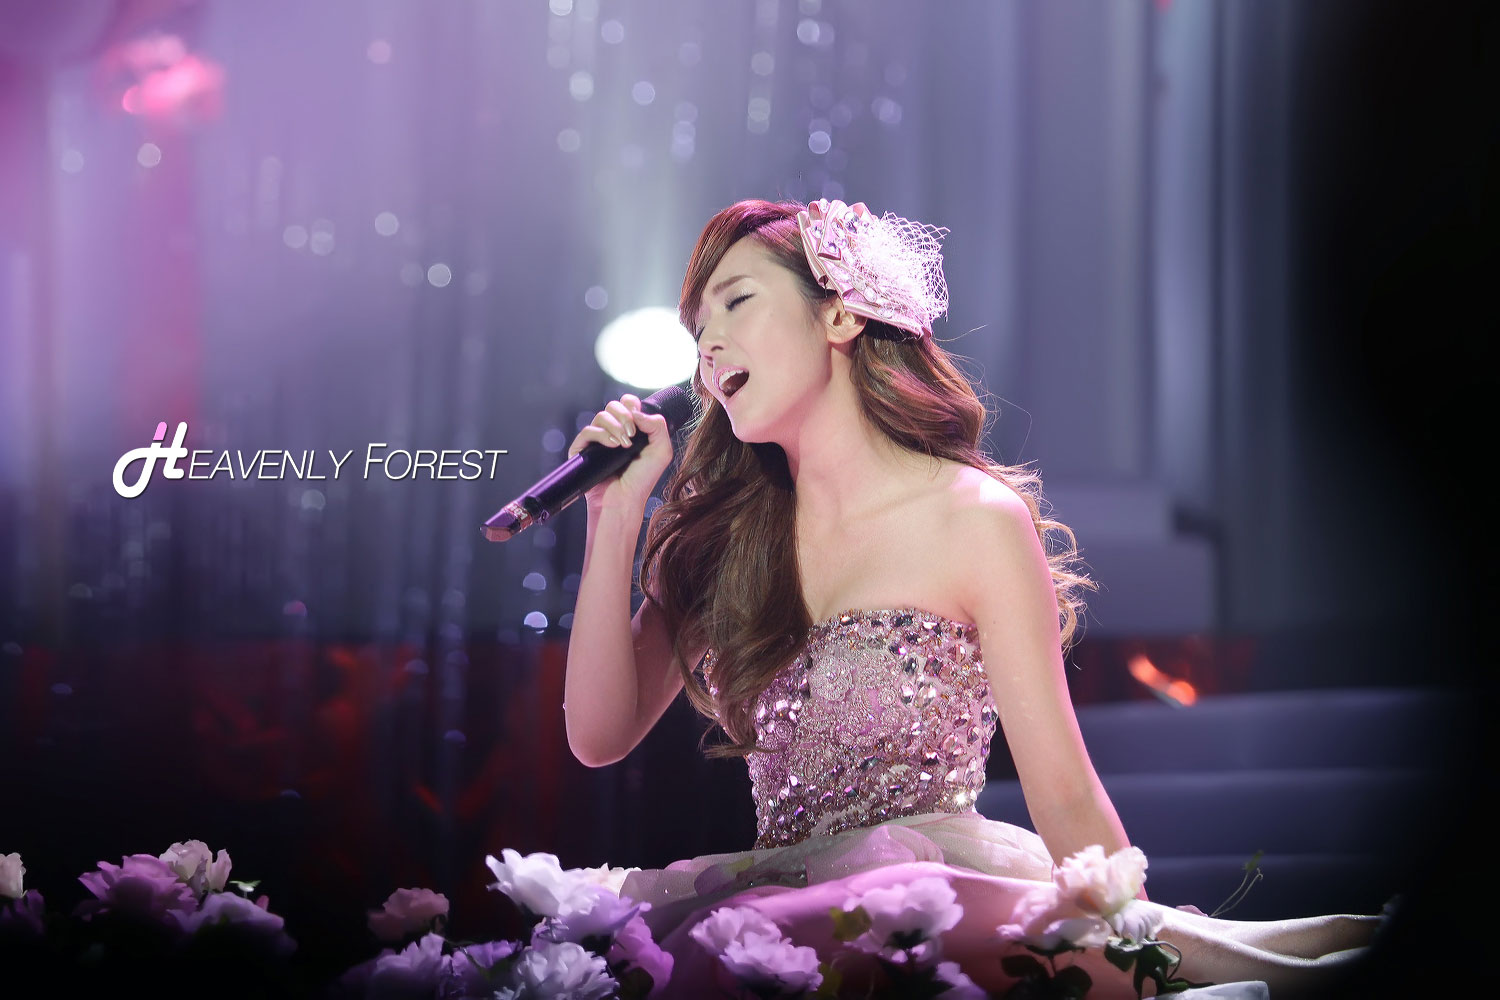 Jessica @ MBC Christmas special | Pretty Photos and videos of Girls ...